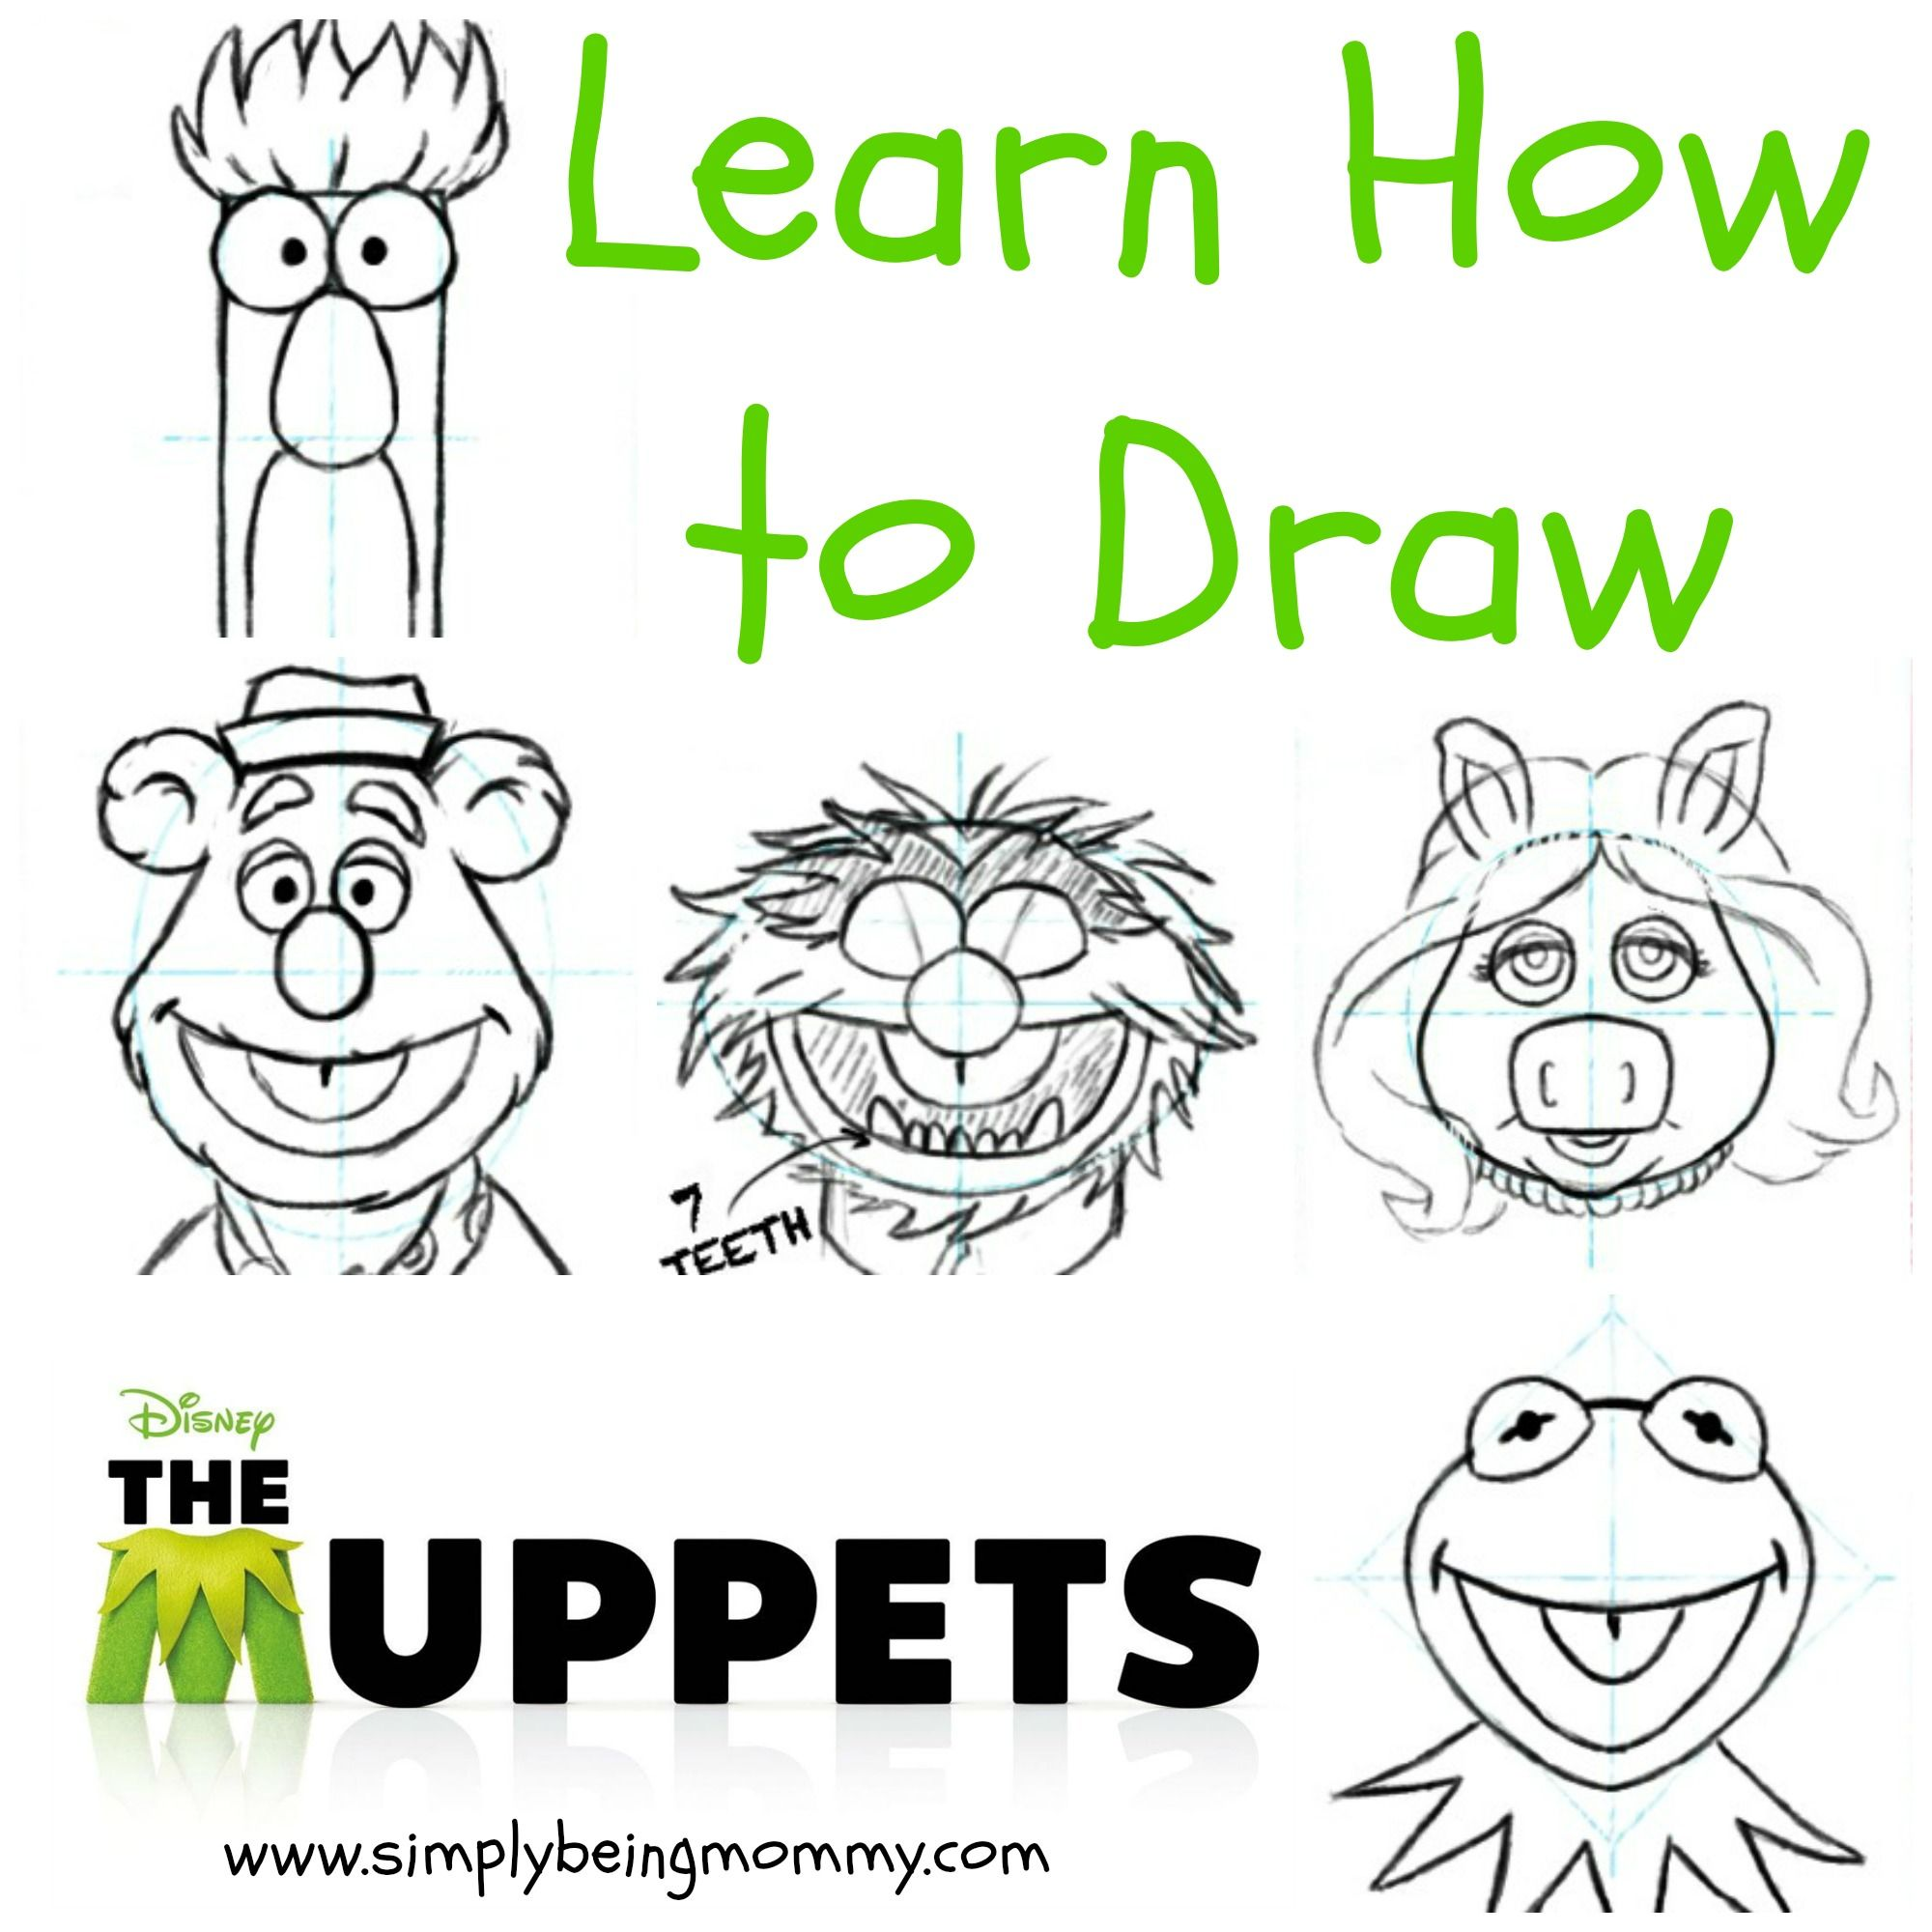 2000x2000 How To Draw The Muppets Drawings, Doodles And Craft